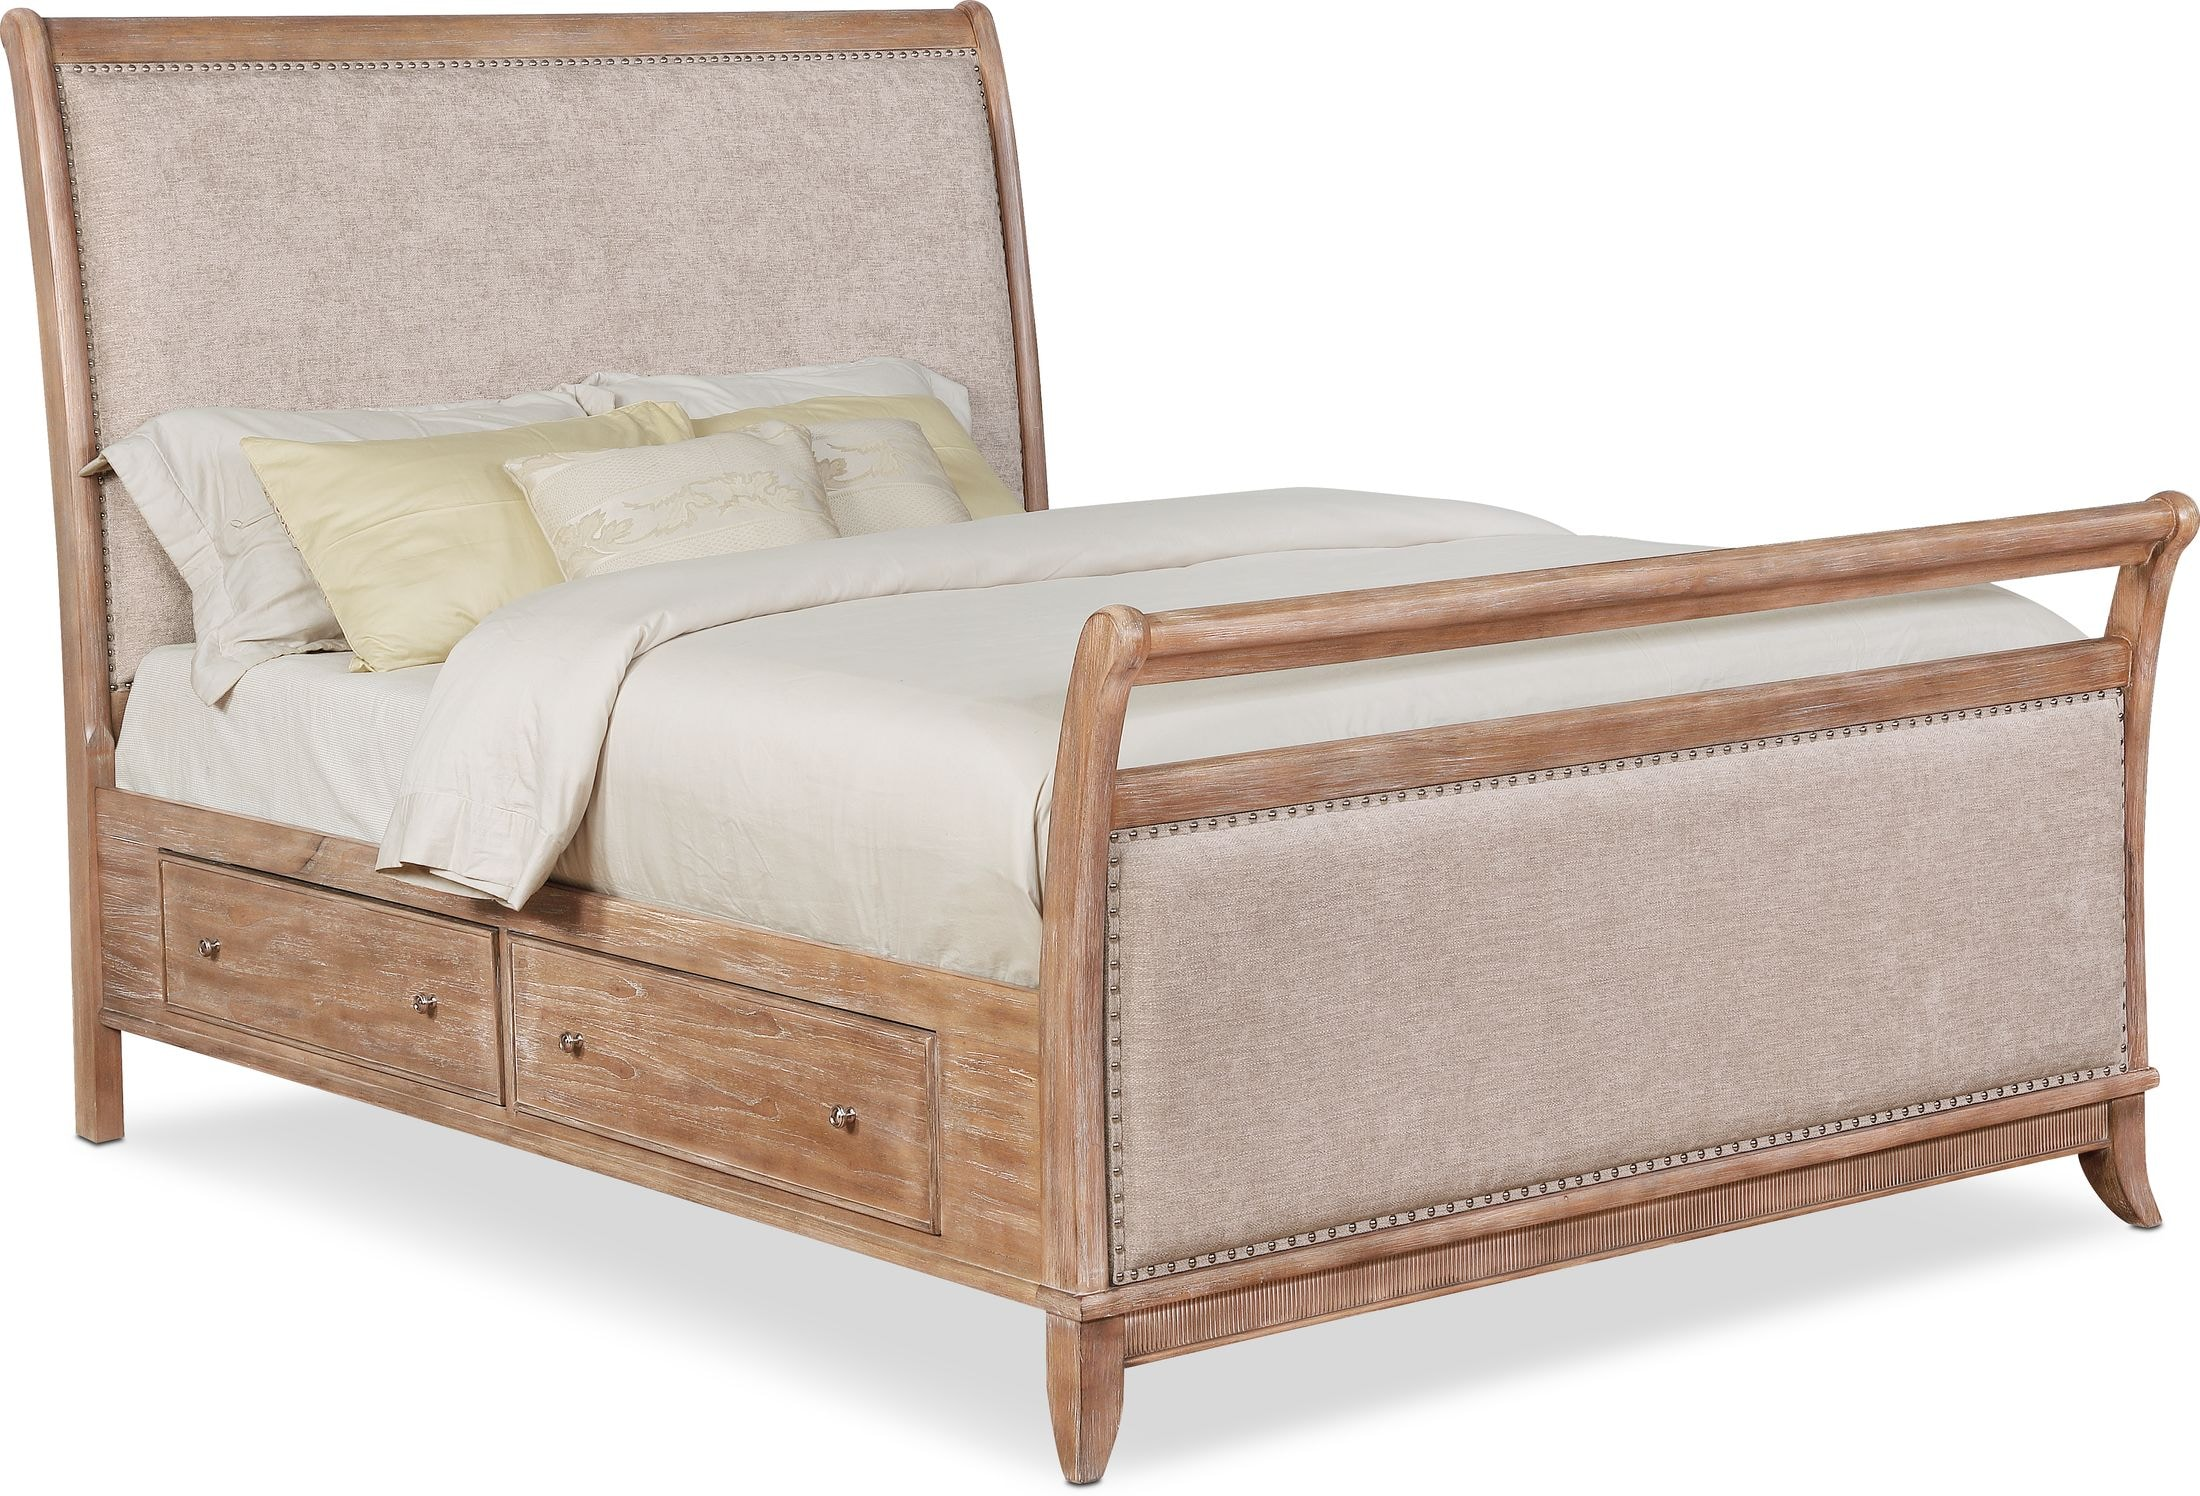 Bedroom Furniture - Hazel Upholstered Storage Bed